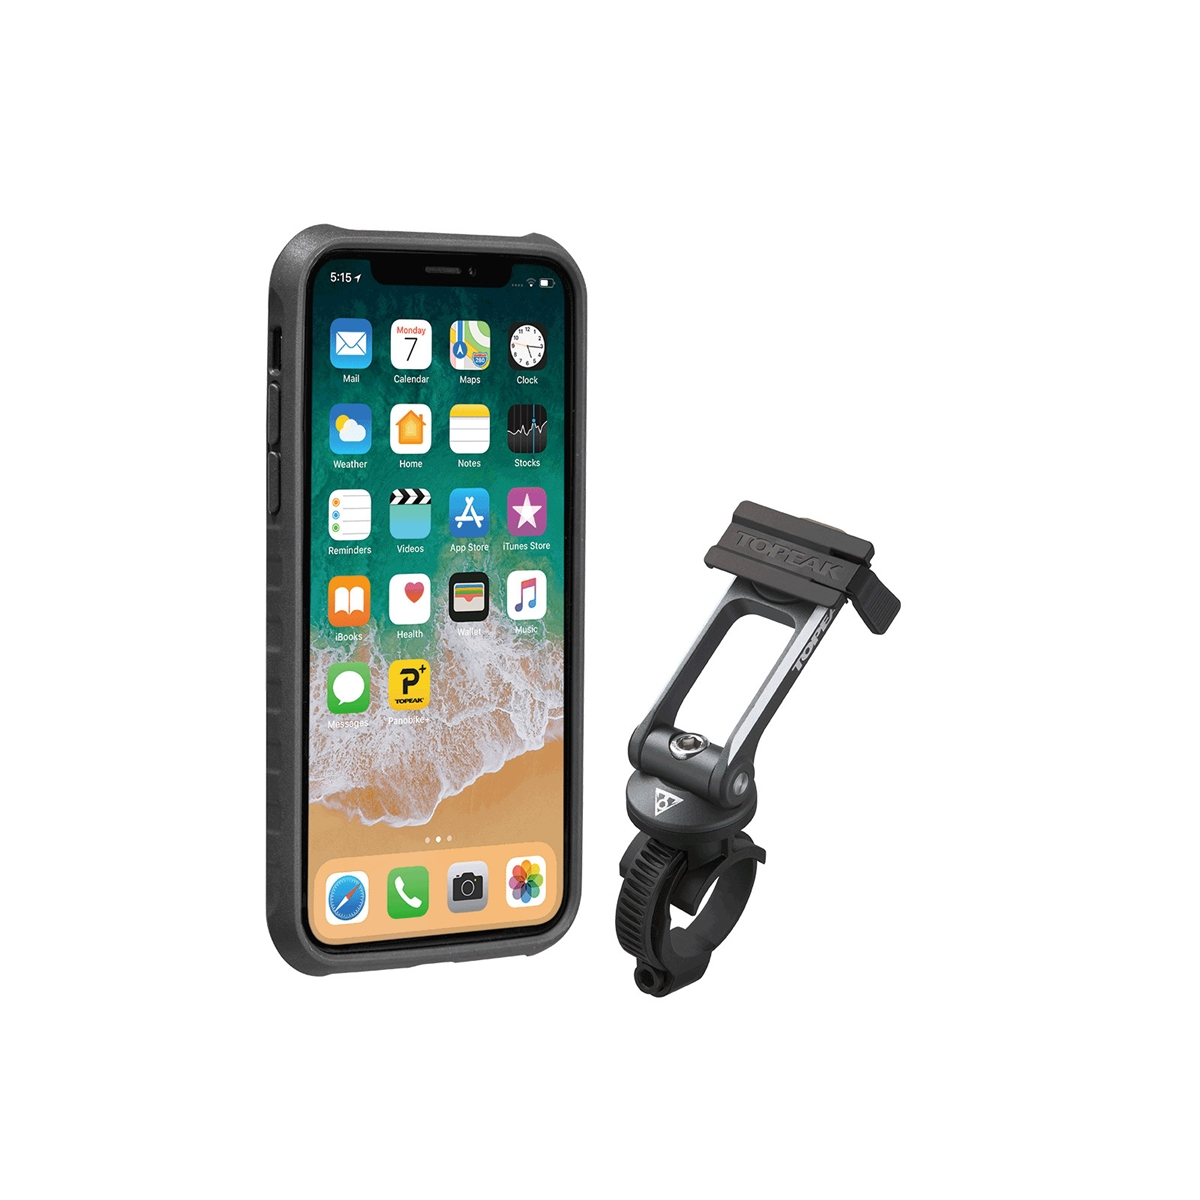 RideCase for iPhone X/XS Black/Gray Mount Included